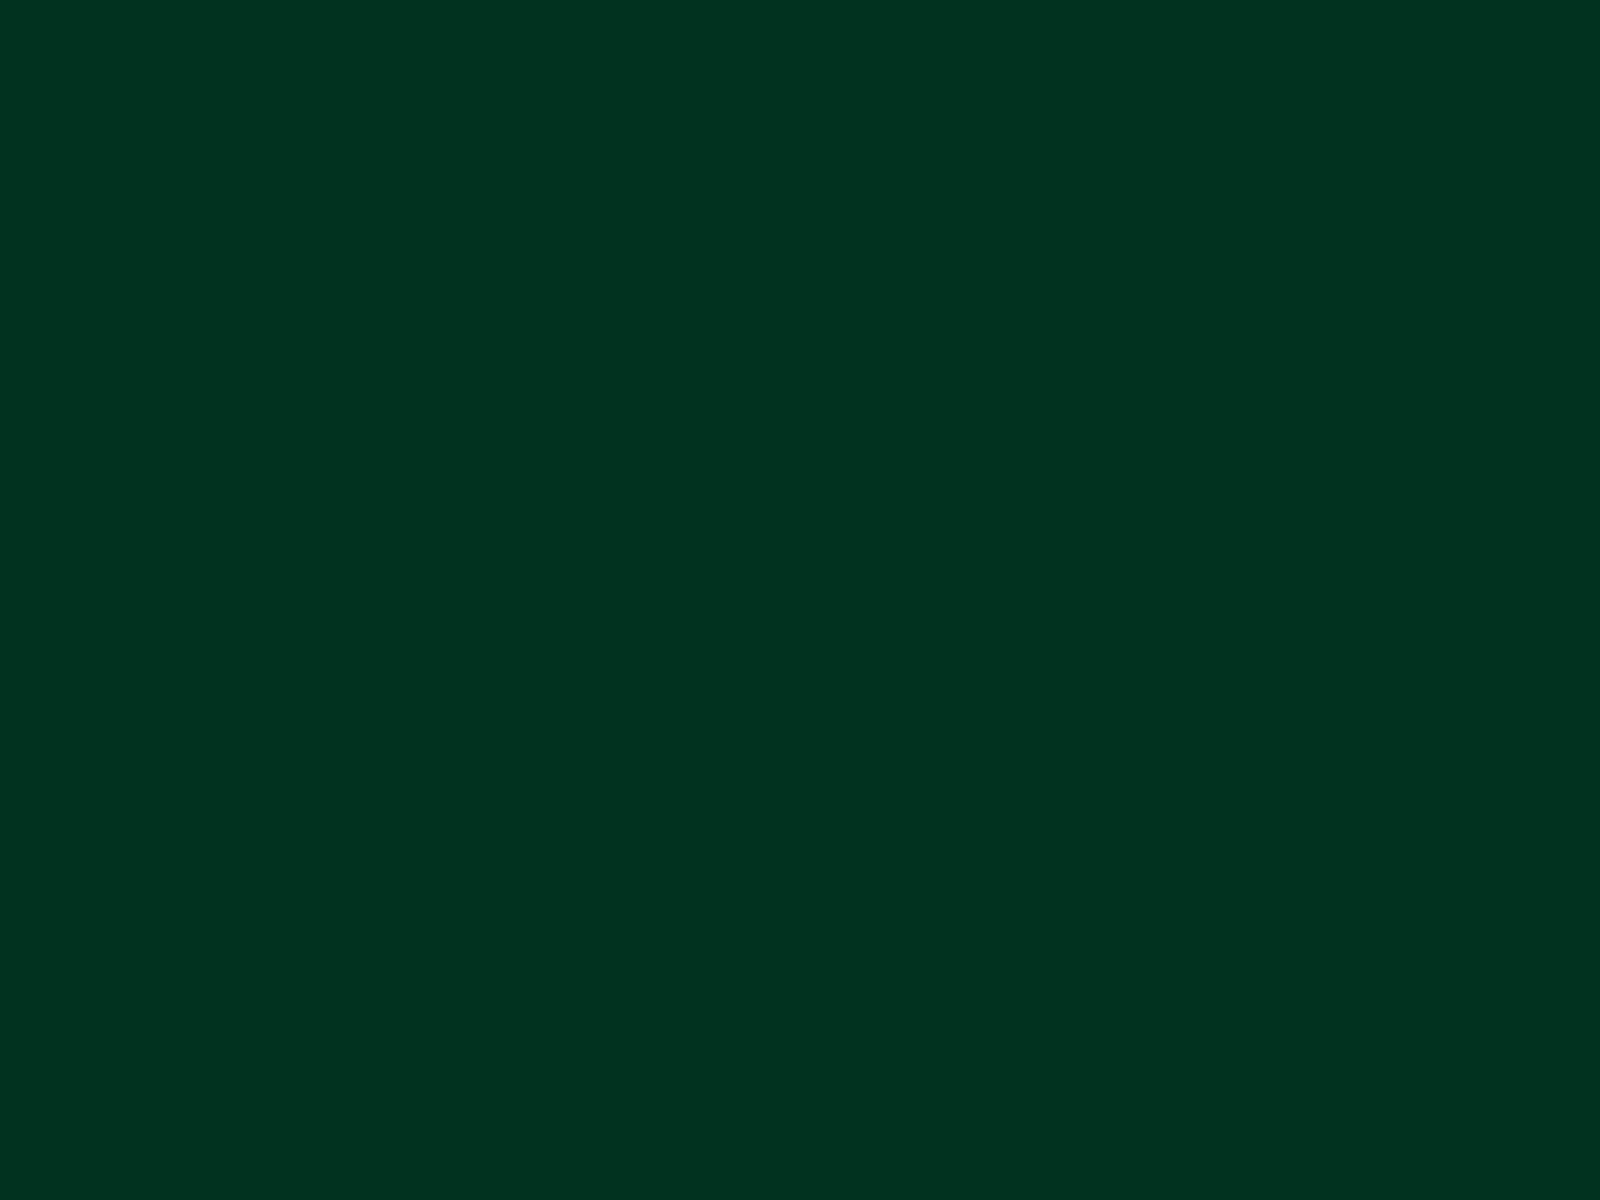 1600x1200 Dark Green Solid Color Background